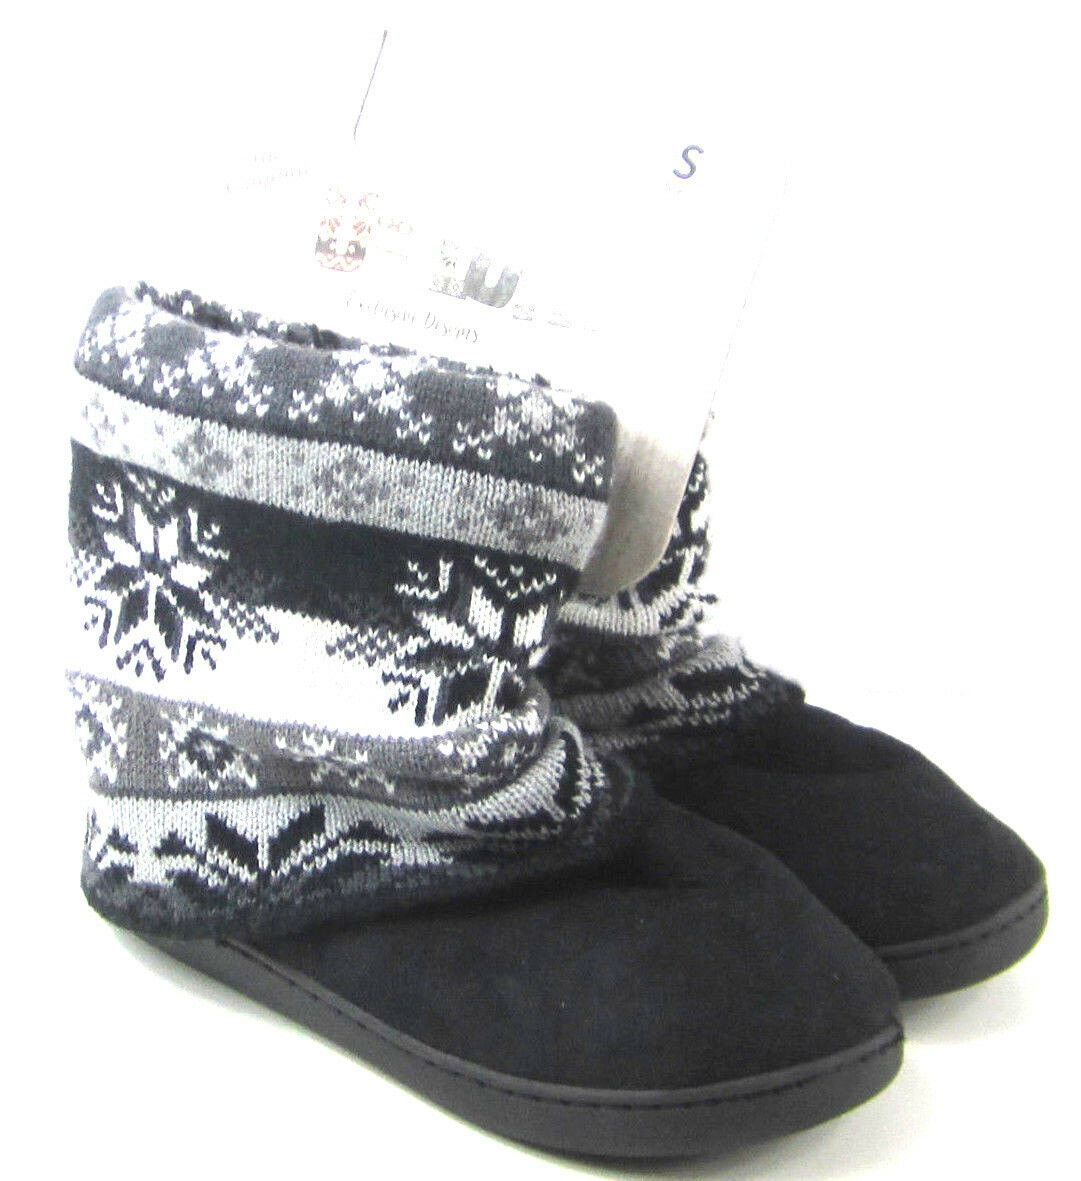 NEW Muk Luks Slippers Faux Fur Lined Exclusive Design Size Women's Small 5 - 6